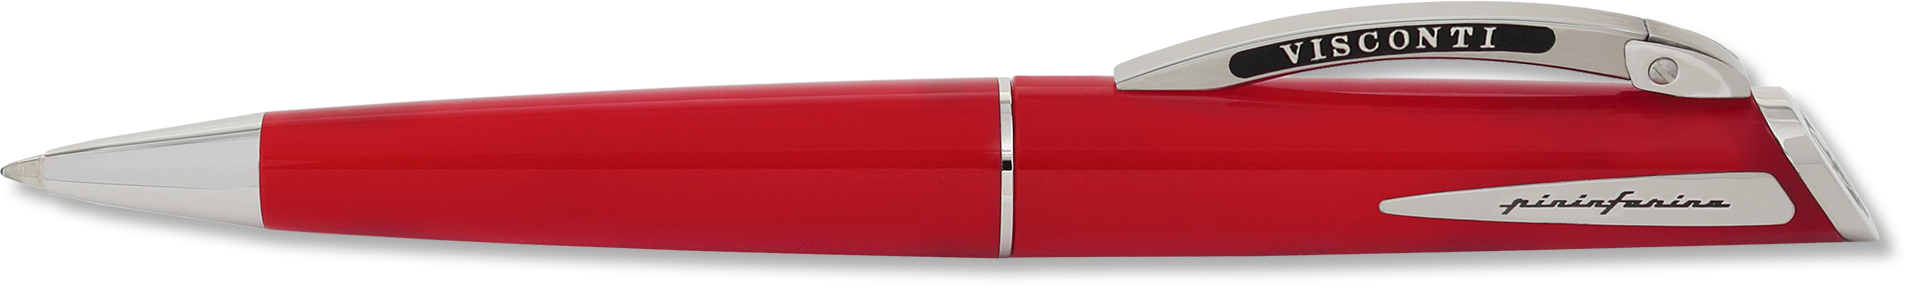 Visconti Red Polished Ballpoint